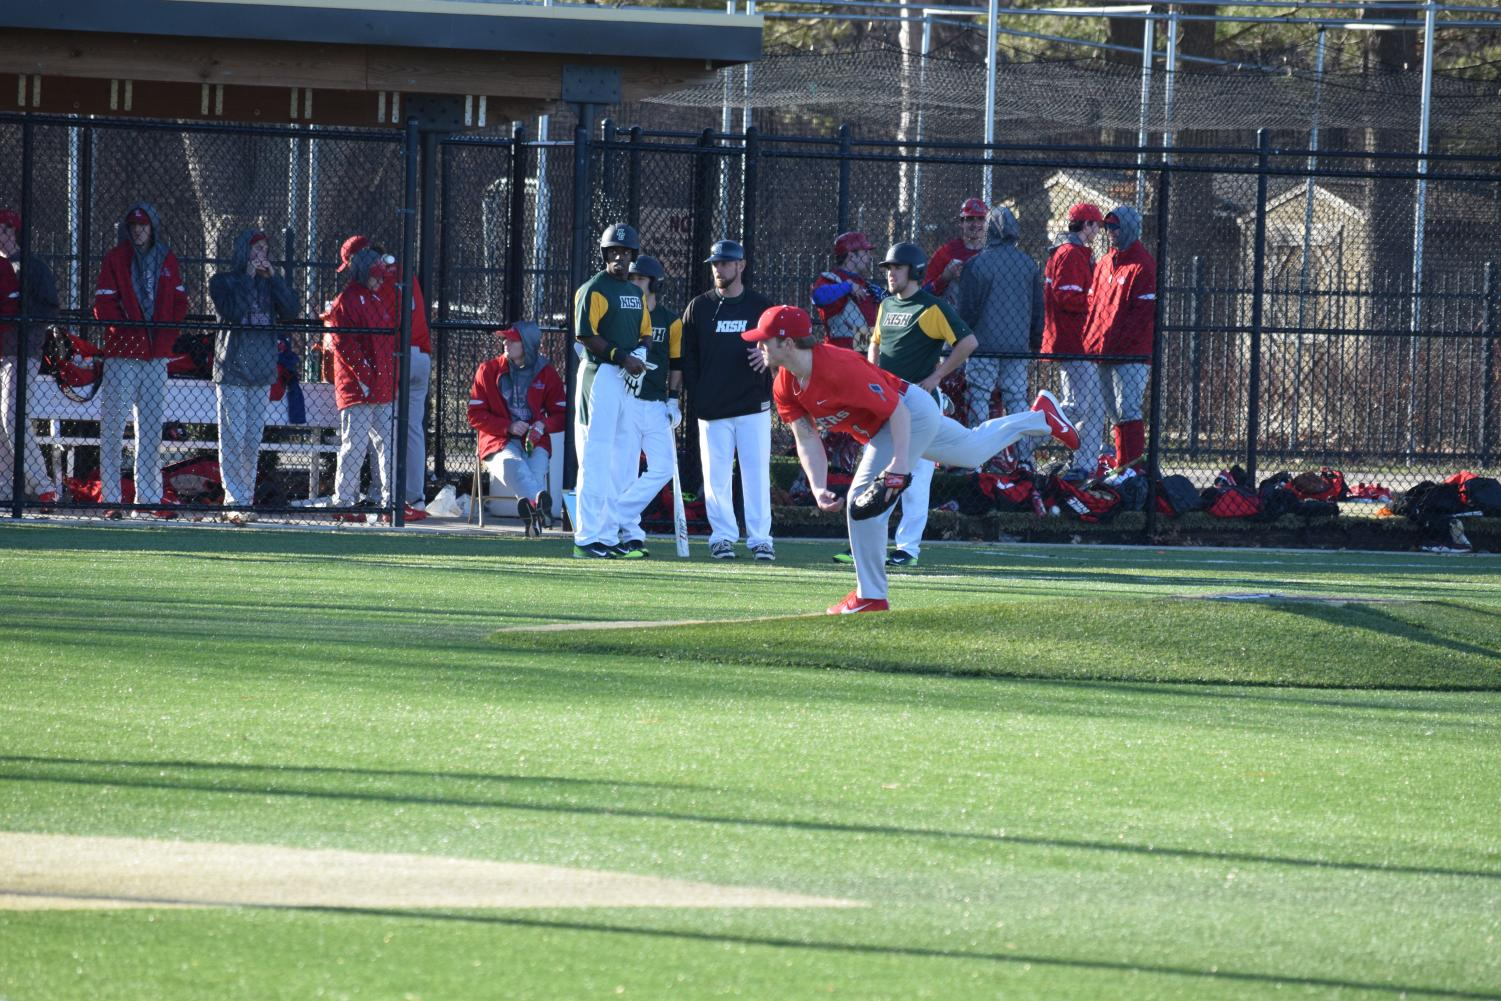 Shayne McNally throws a pitch in the Feb. 25 game agaainst Kishwaukee College.